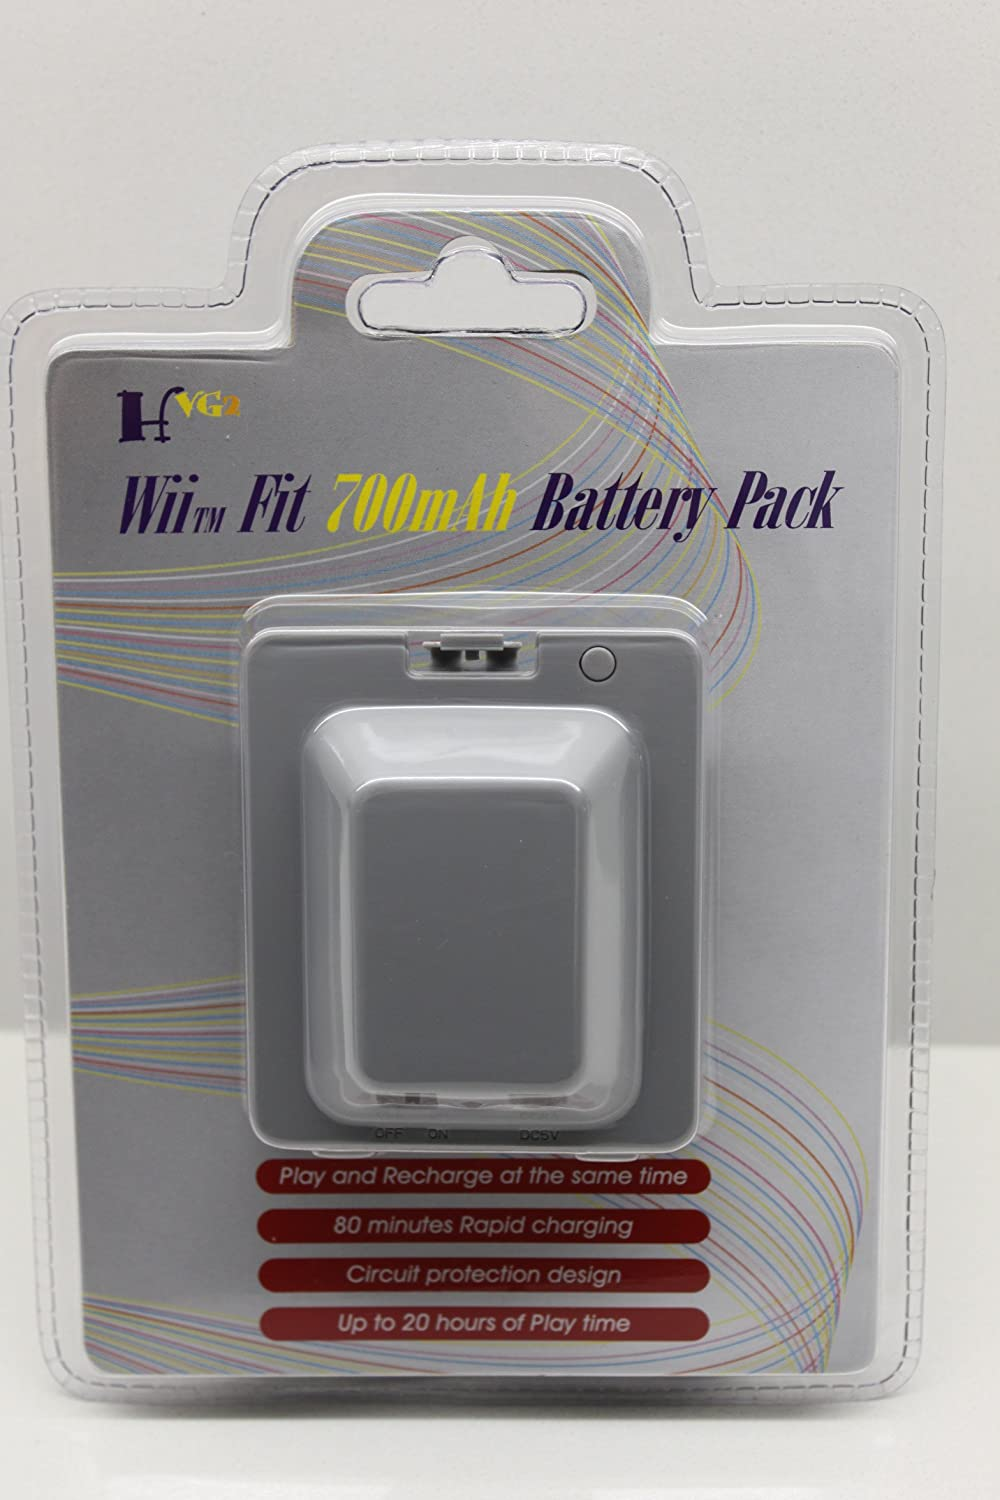 700mAh Rechargeable Battery Pack for Nintendo Wii Fit (Gray)